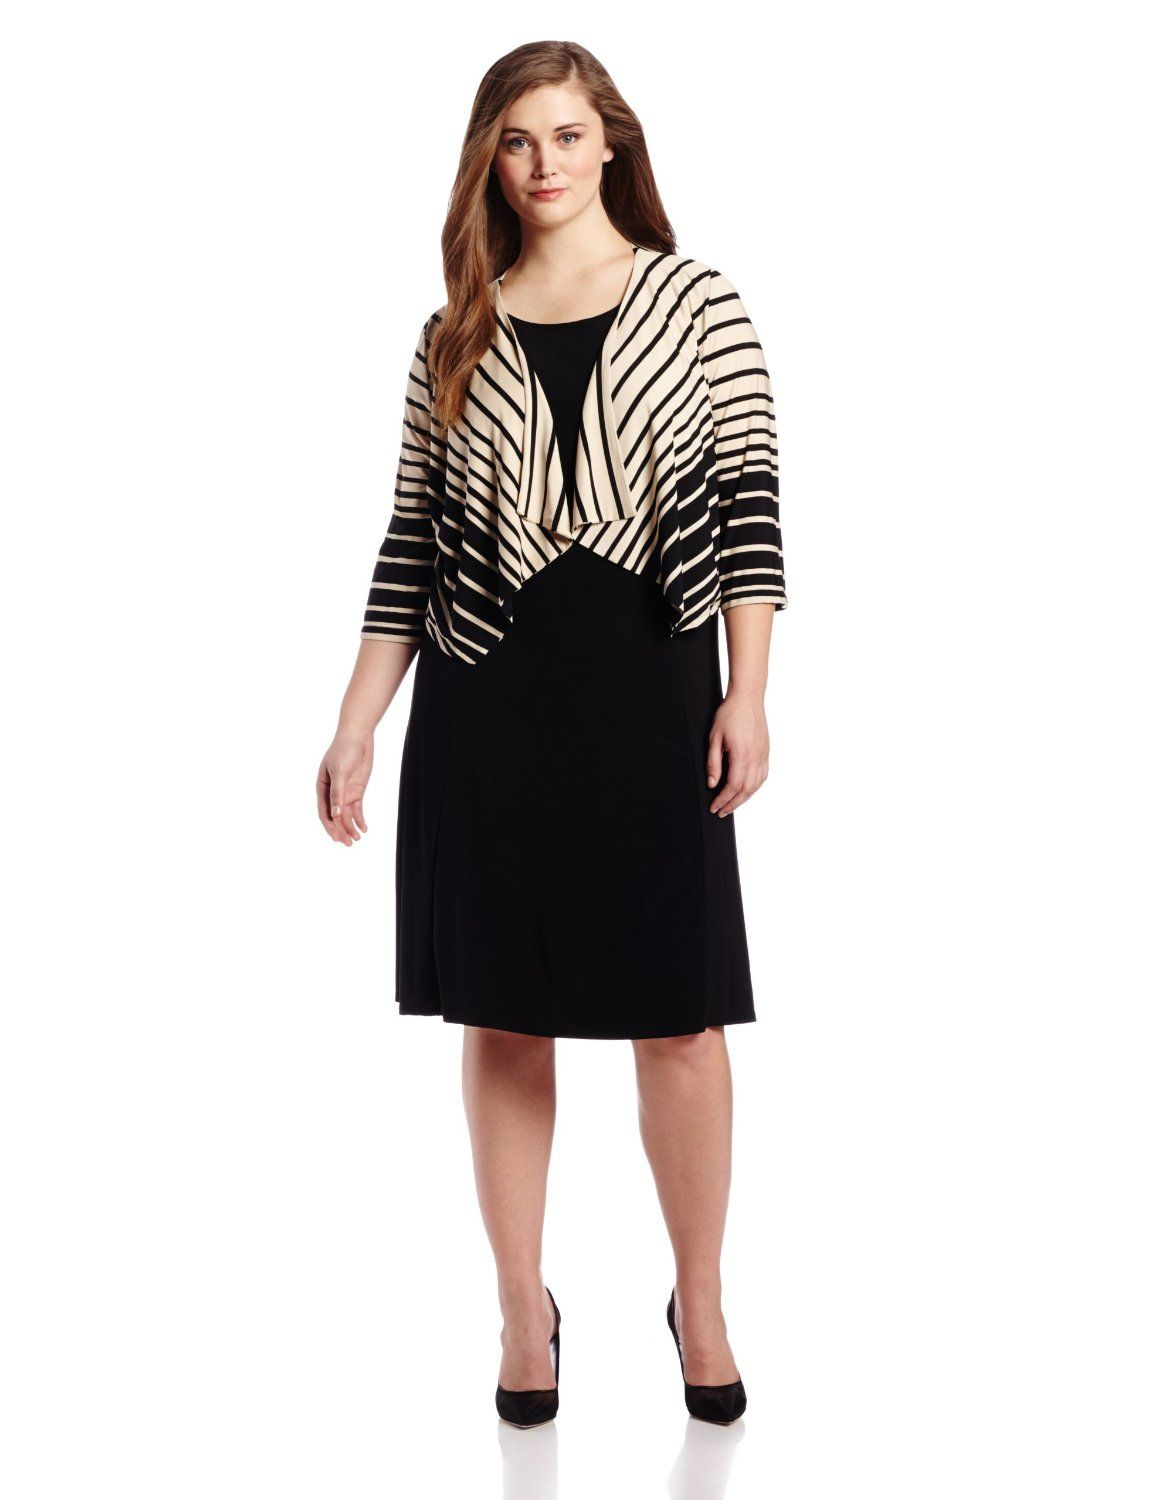 Danny Nicole Womens Plus Size 34 Sleeve Striped Ombre Jacket